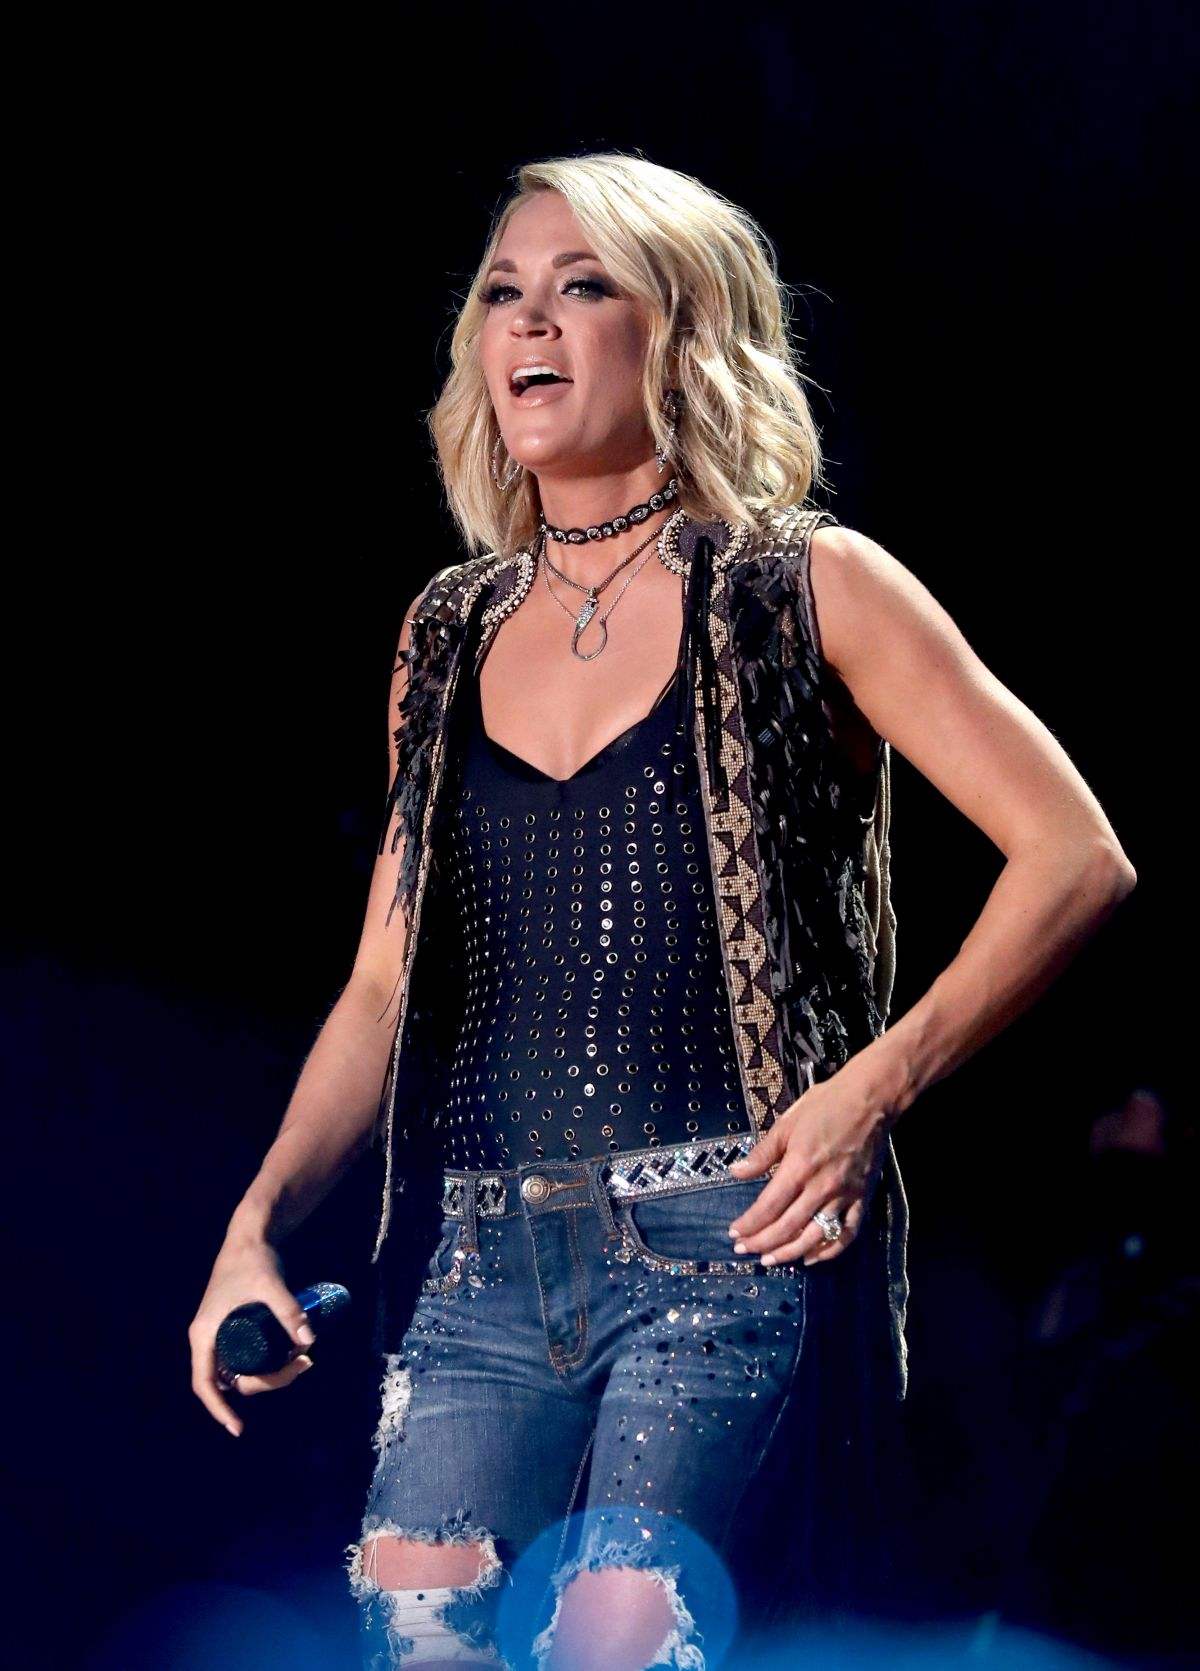 Carrie Underwood Performing At The 2016 Cma Music Festival